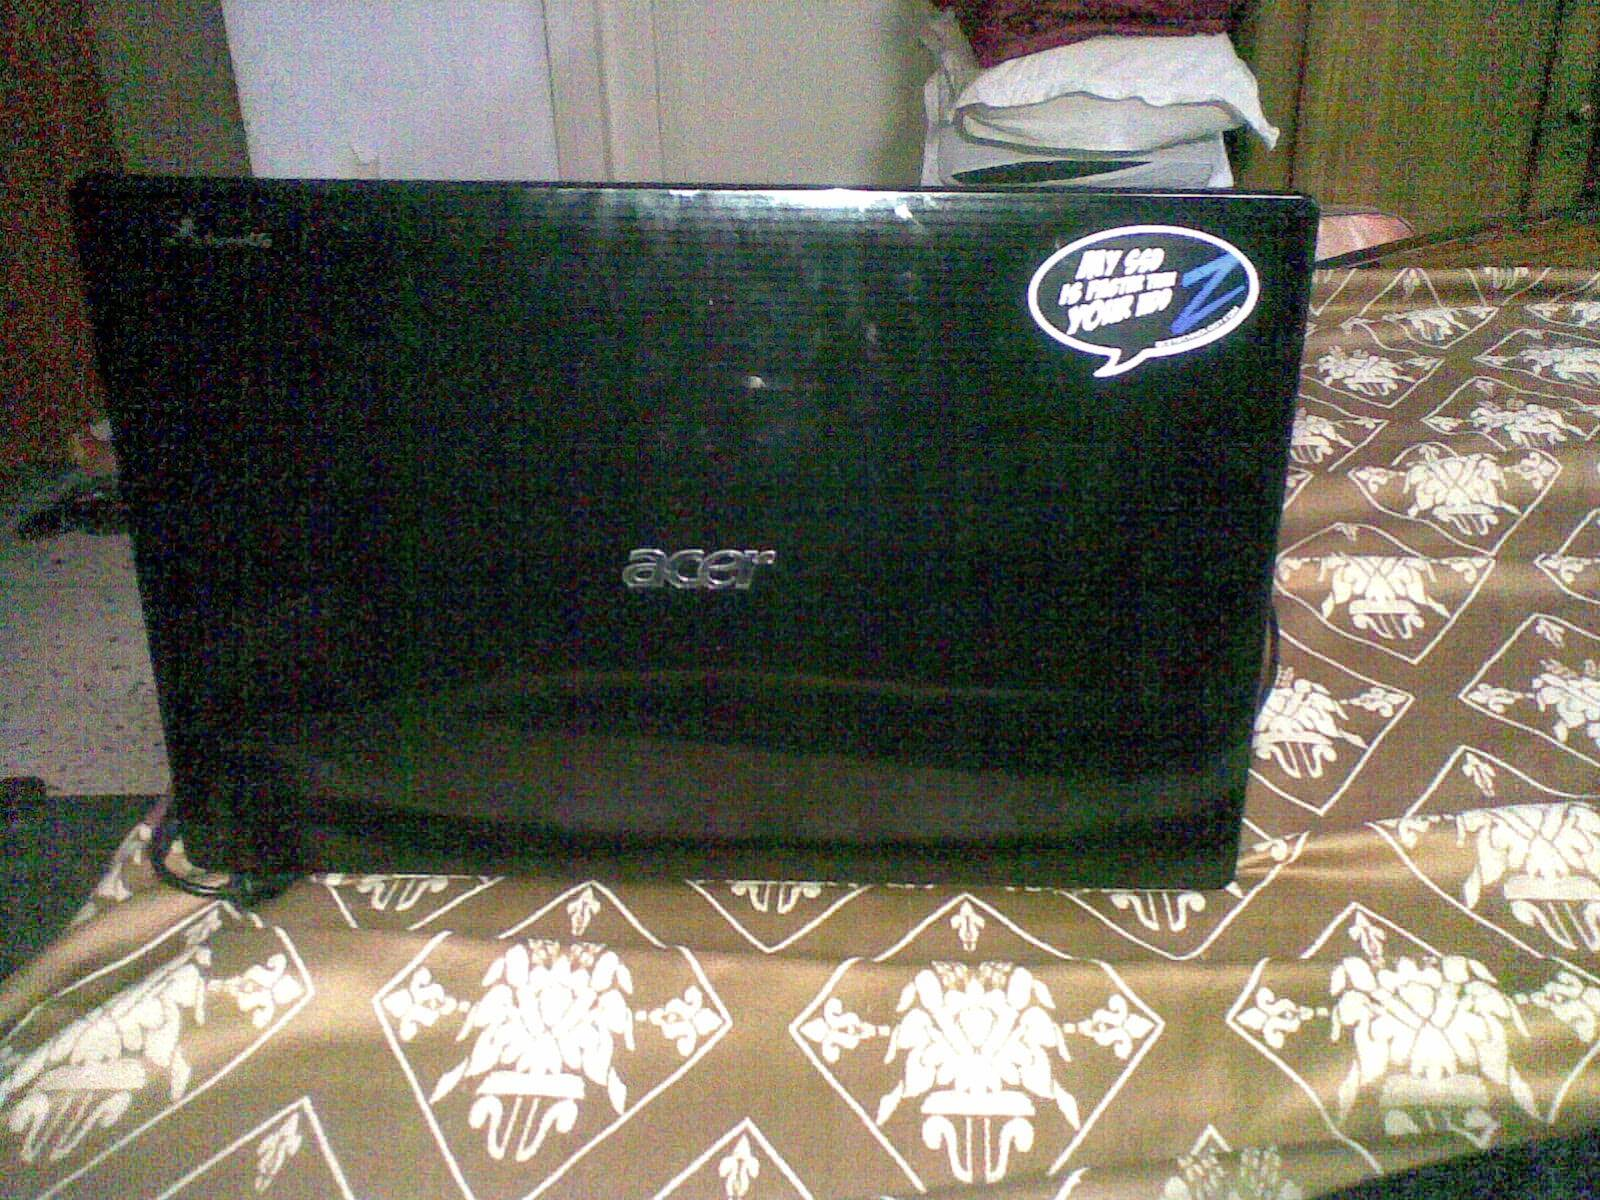 The SSD Sticker On The Laptop. :)